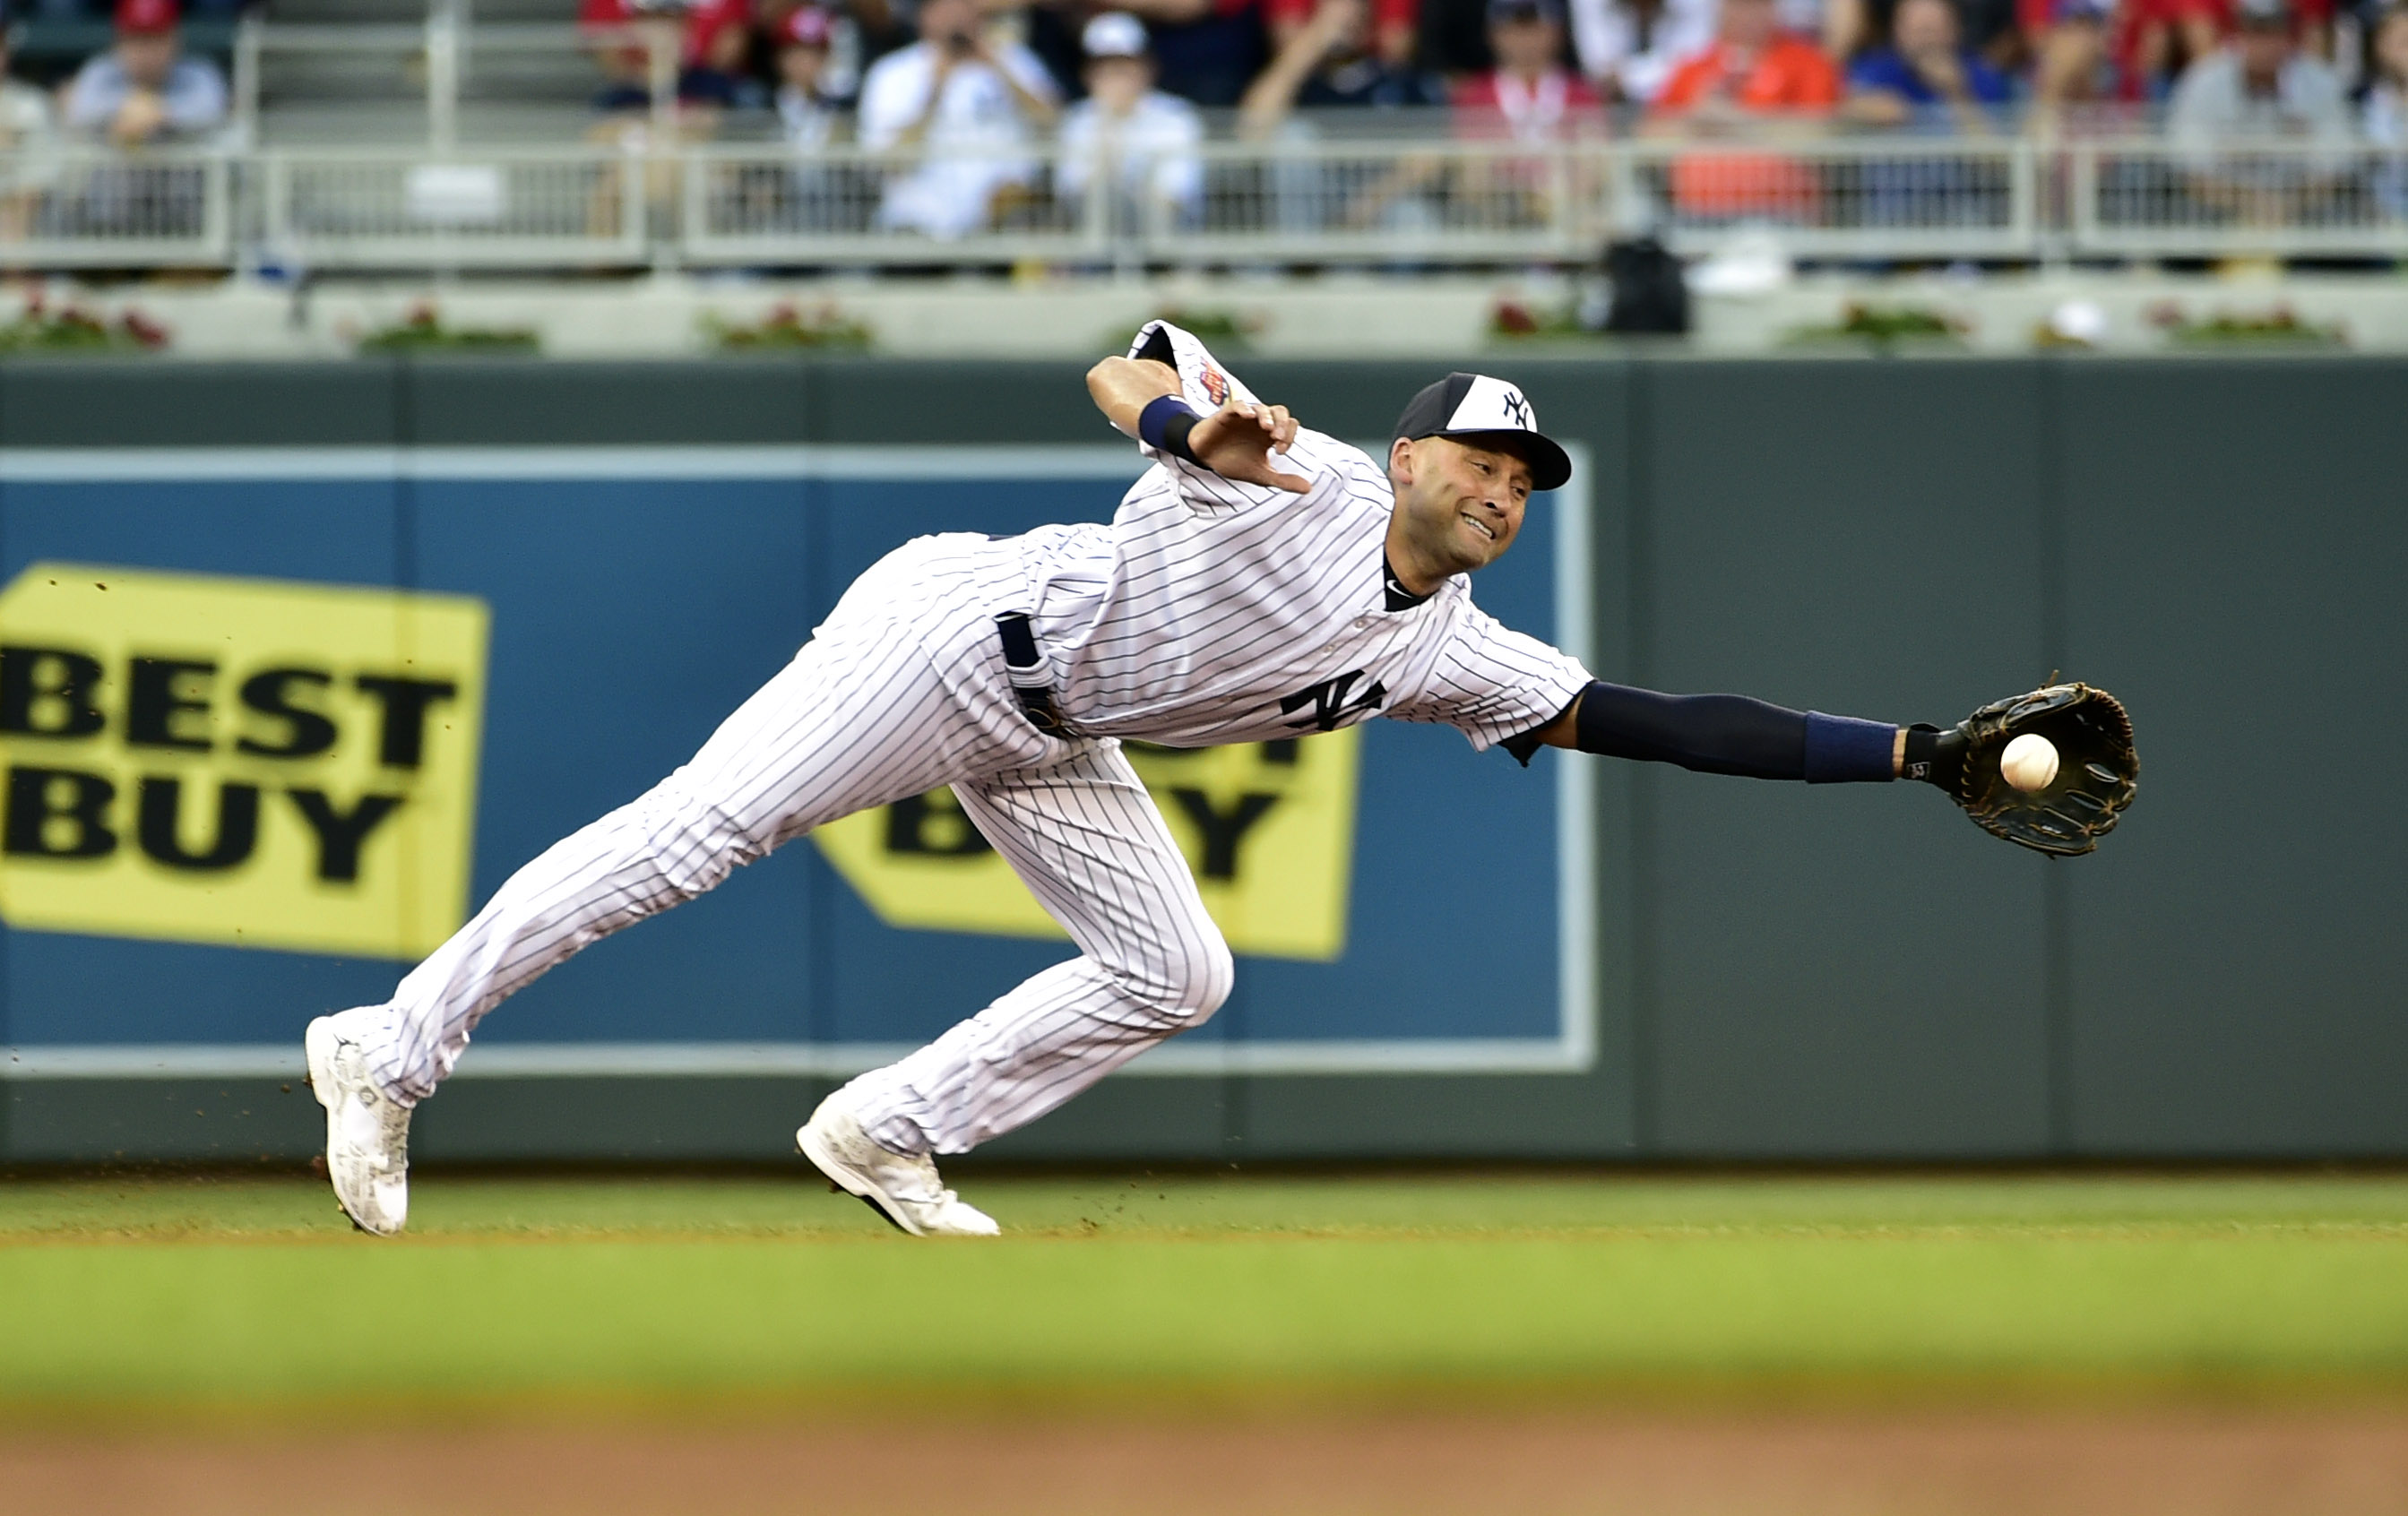 Derek Jeter makes a diving stop on a ball hit by Andrew McCutchen to lead off the 85 All-Star Game. (Scott Rovak, USA TODAY Sports)